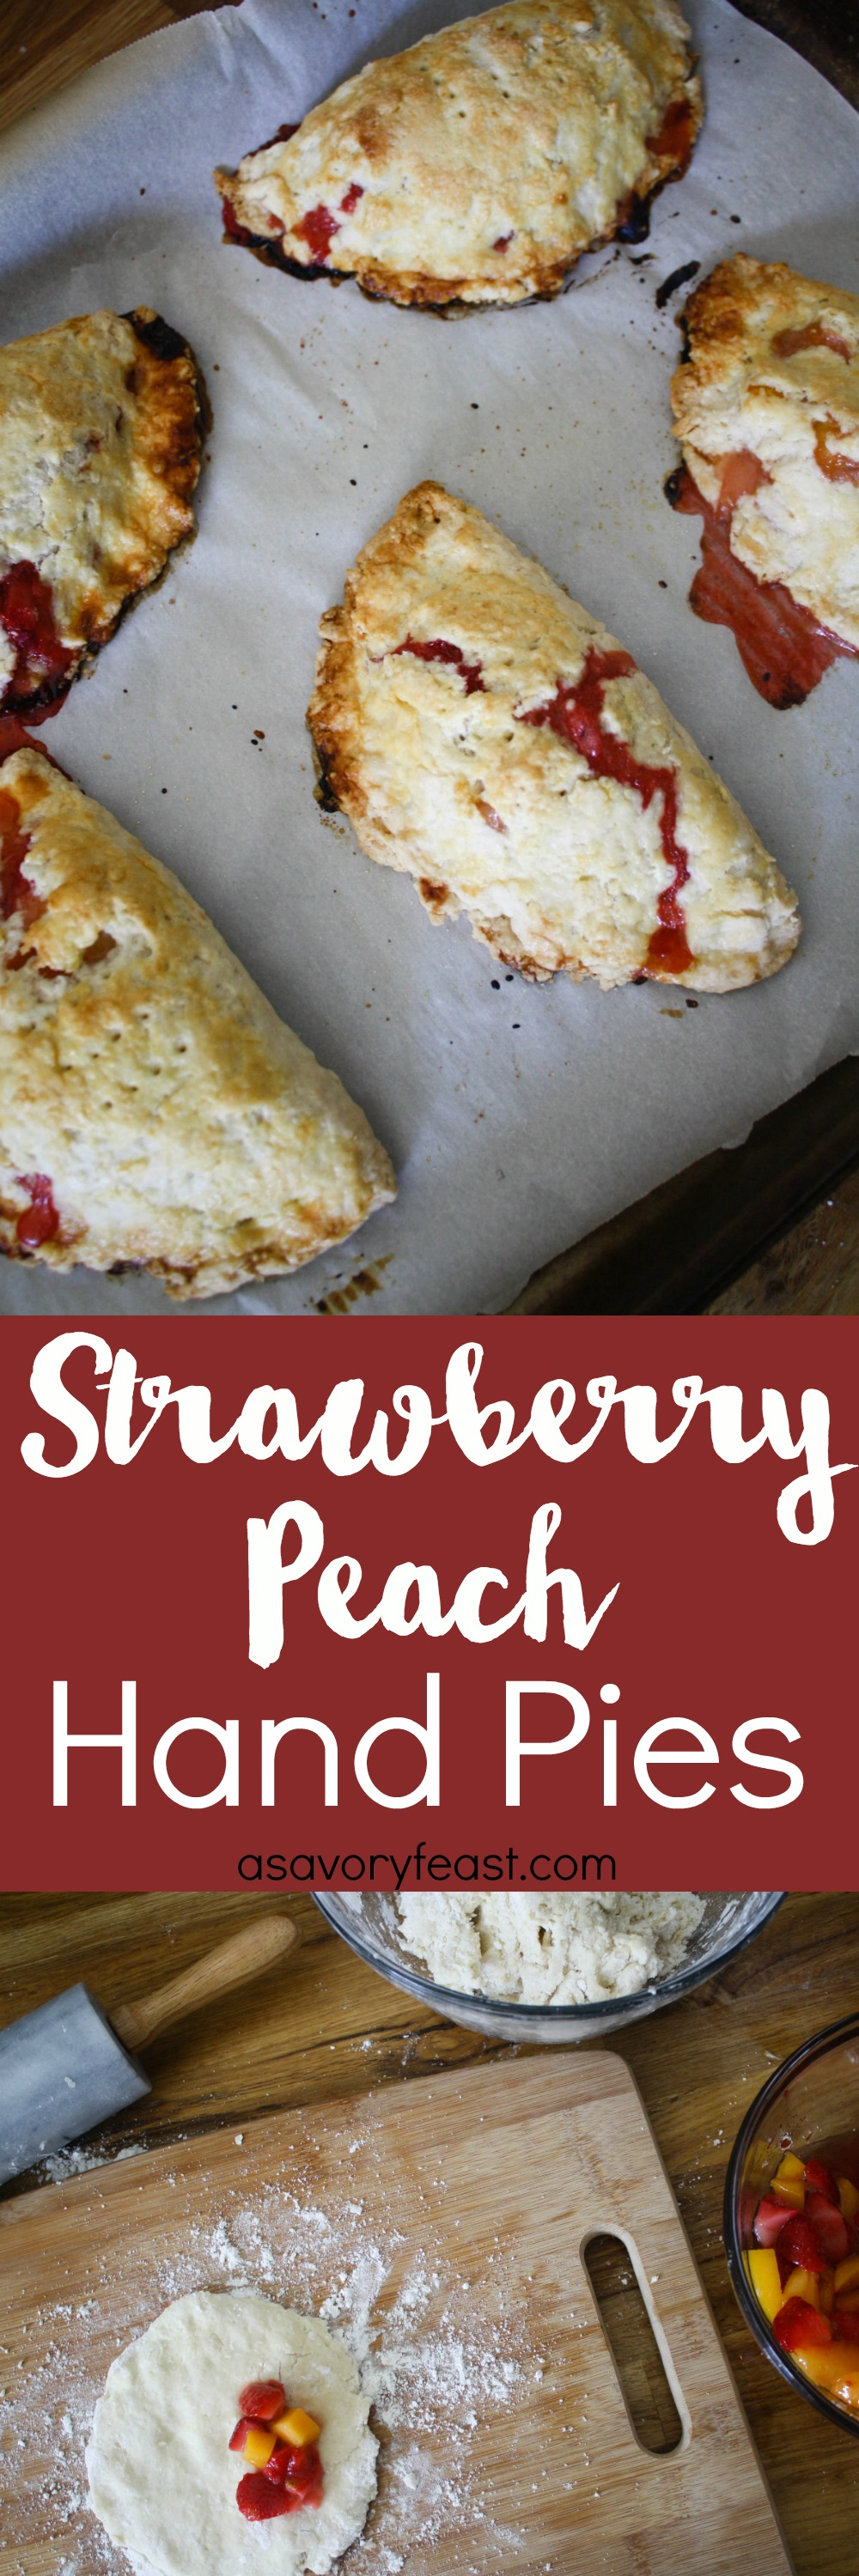 Strawberry Peach Hand Pies are a sweet, rustic dessert that is perfect for Spring! Homemade pie crust wrapped around a juicy filling of peaches and strawberries. | Hand Pies | Peaches | Strawberries | Spring Desserts